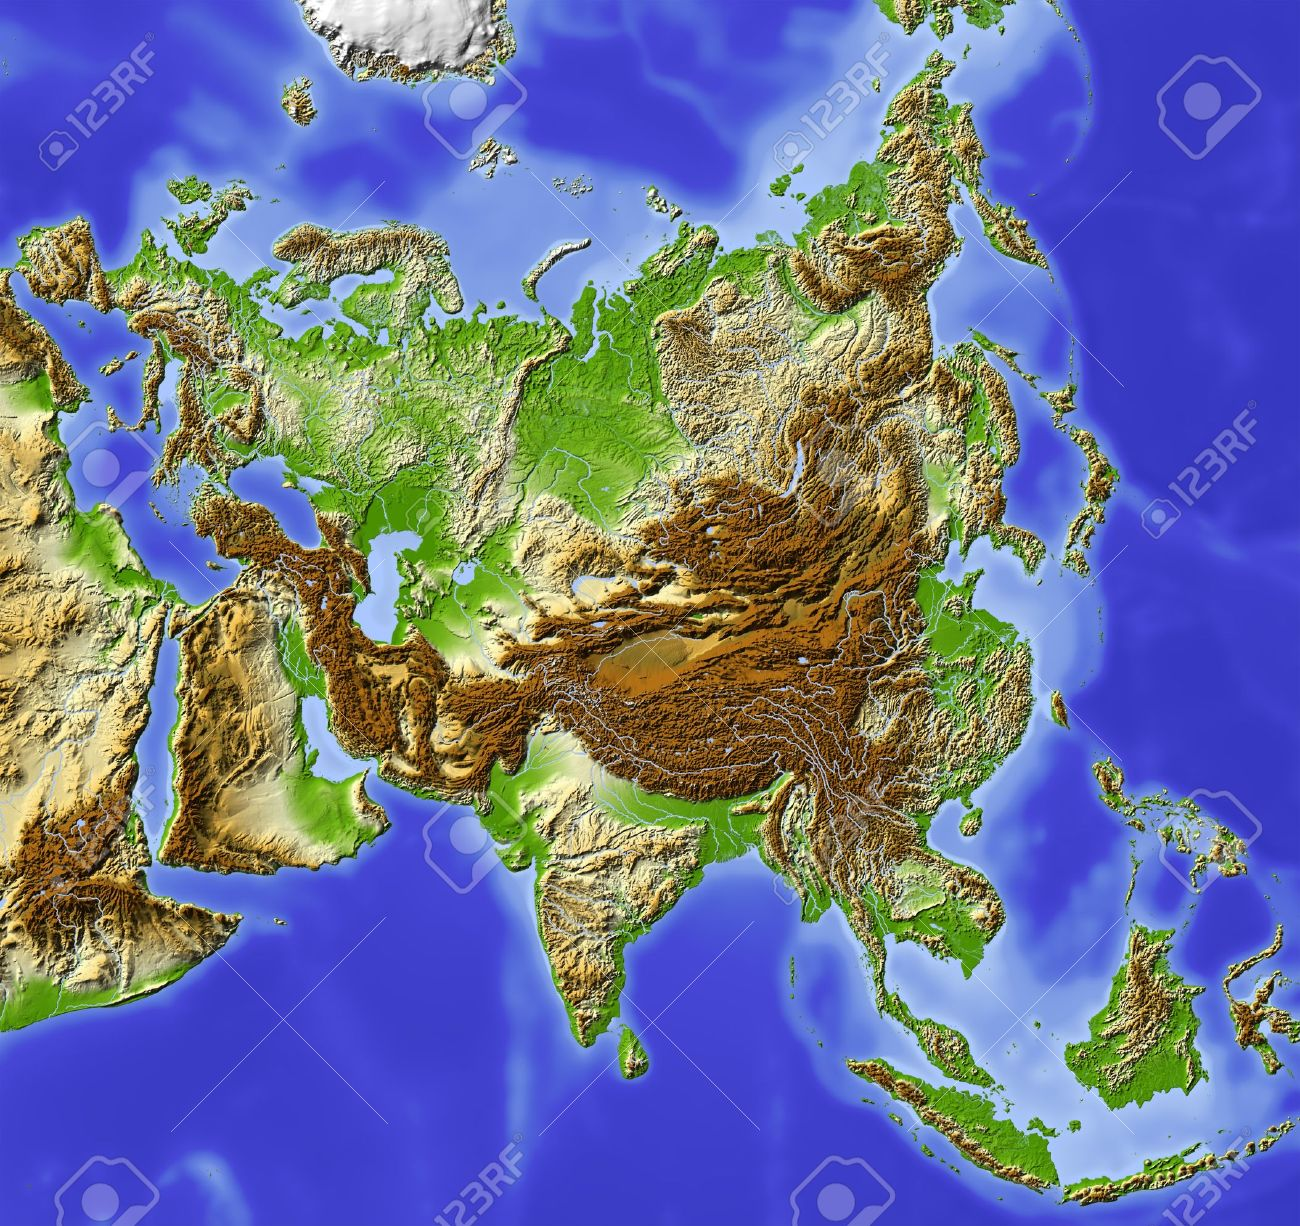 Asia Shaded Relief Map Colored According To Elevation Includes